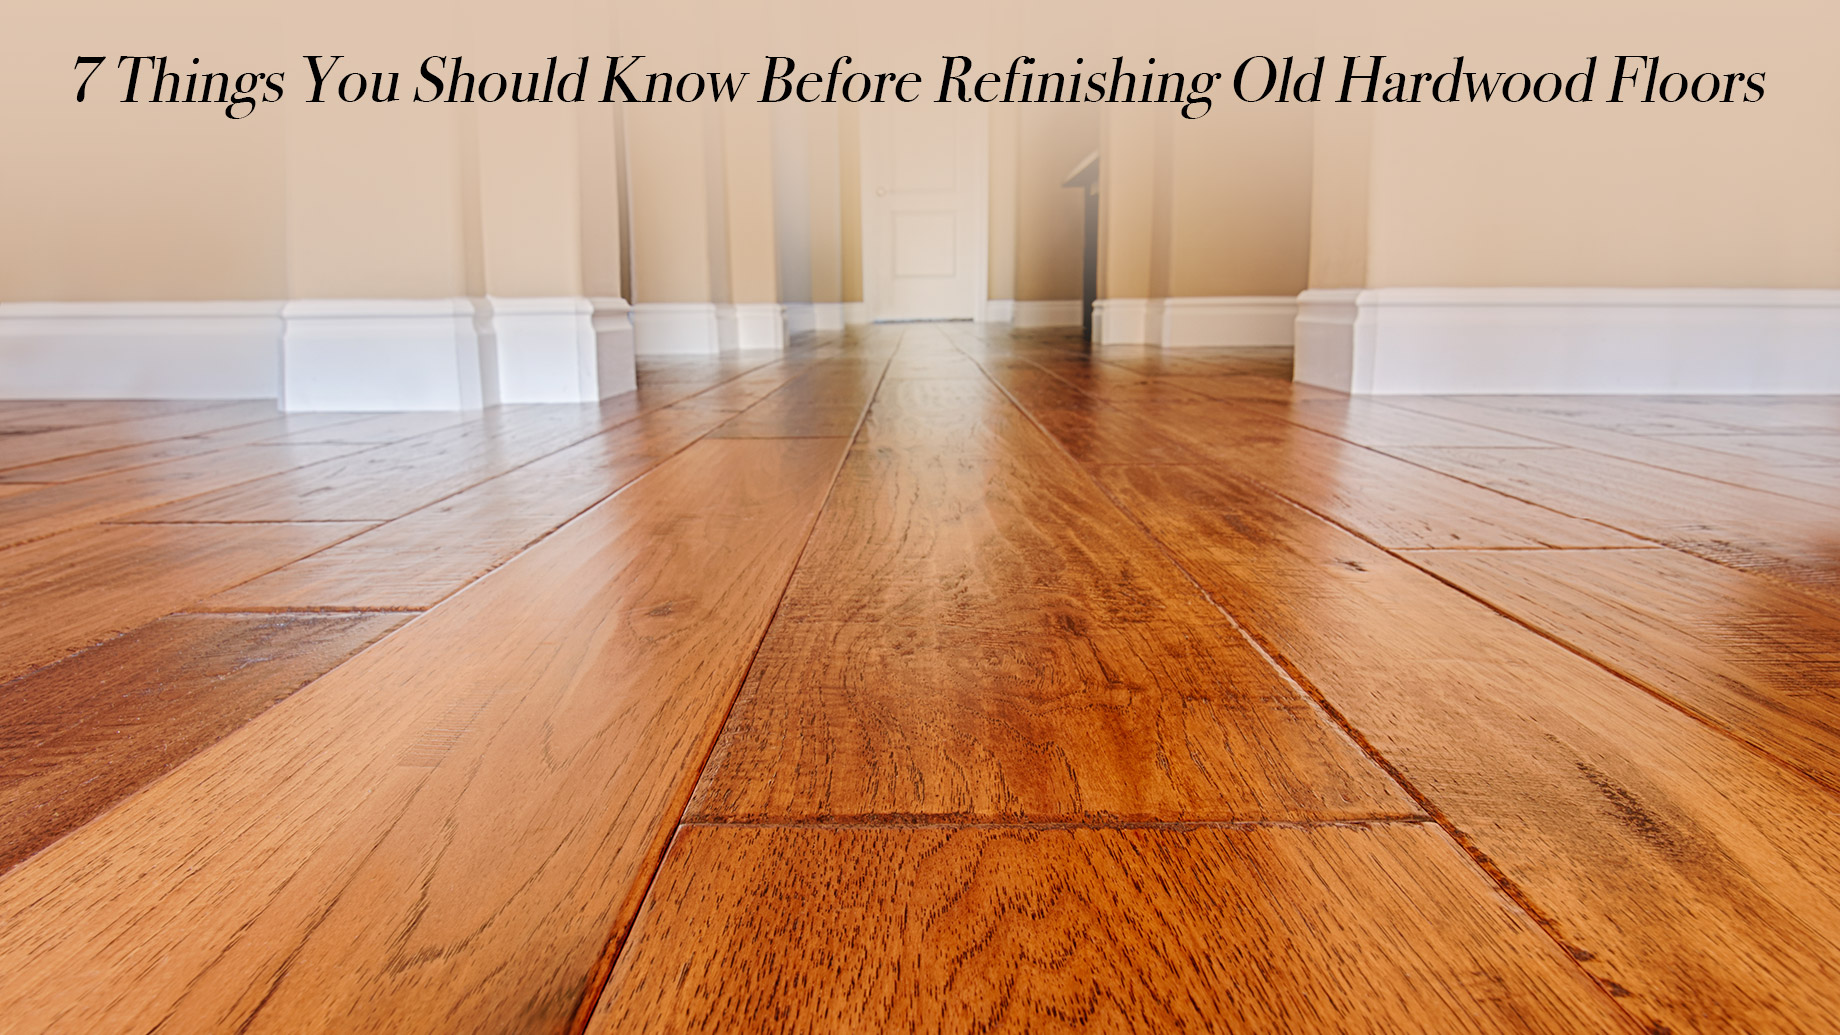 7 Things You Should Know Before Refinishing Old Hardwood Floors